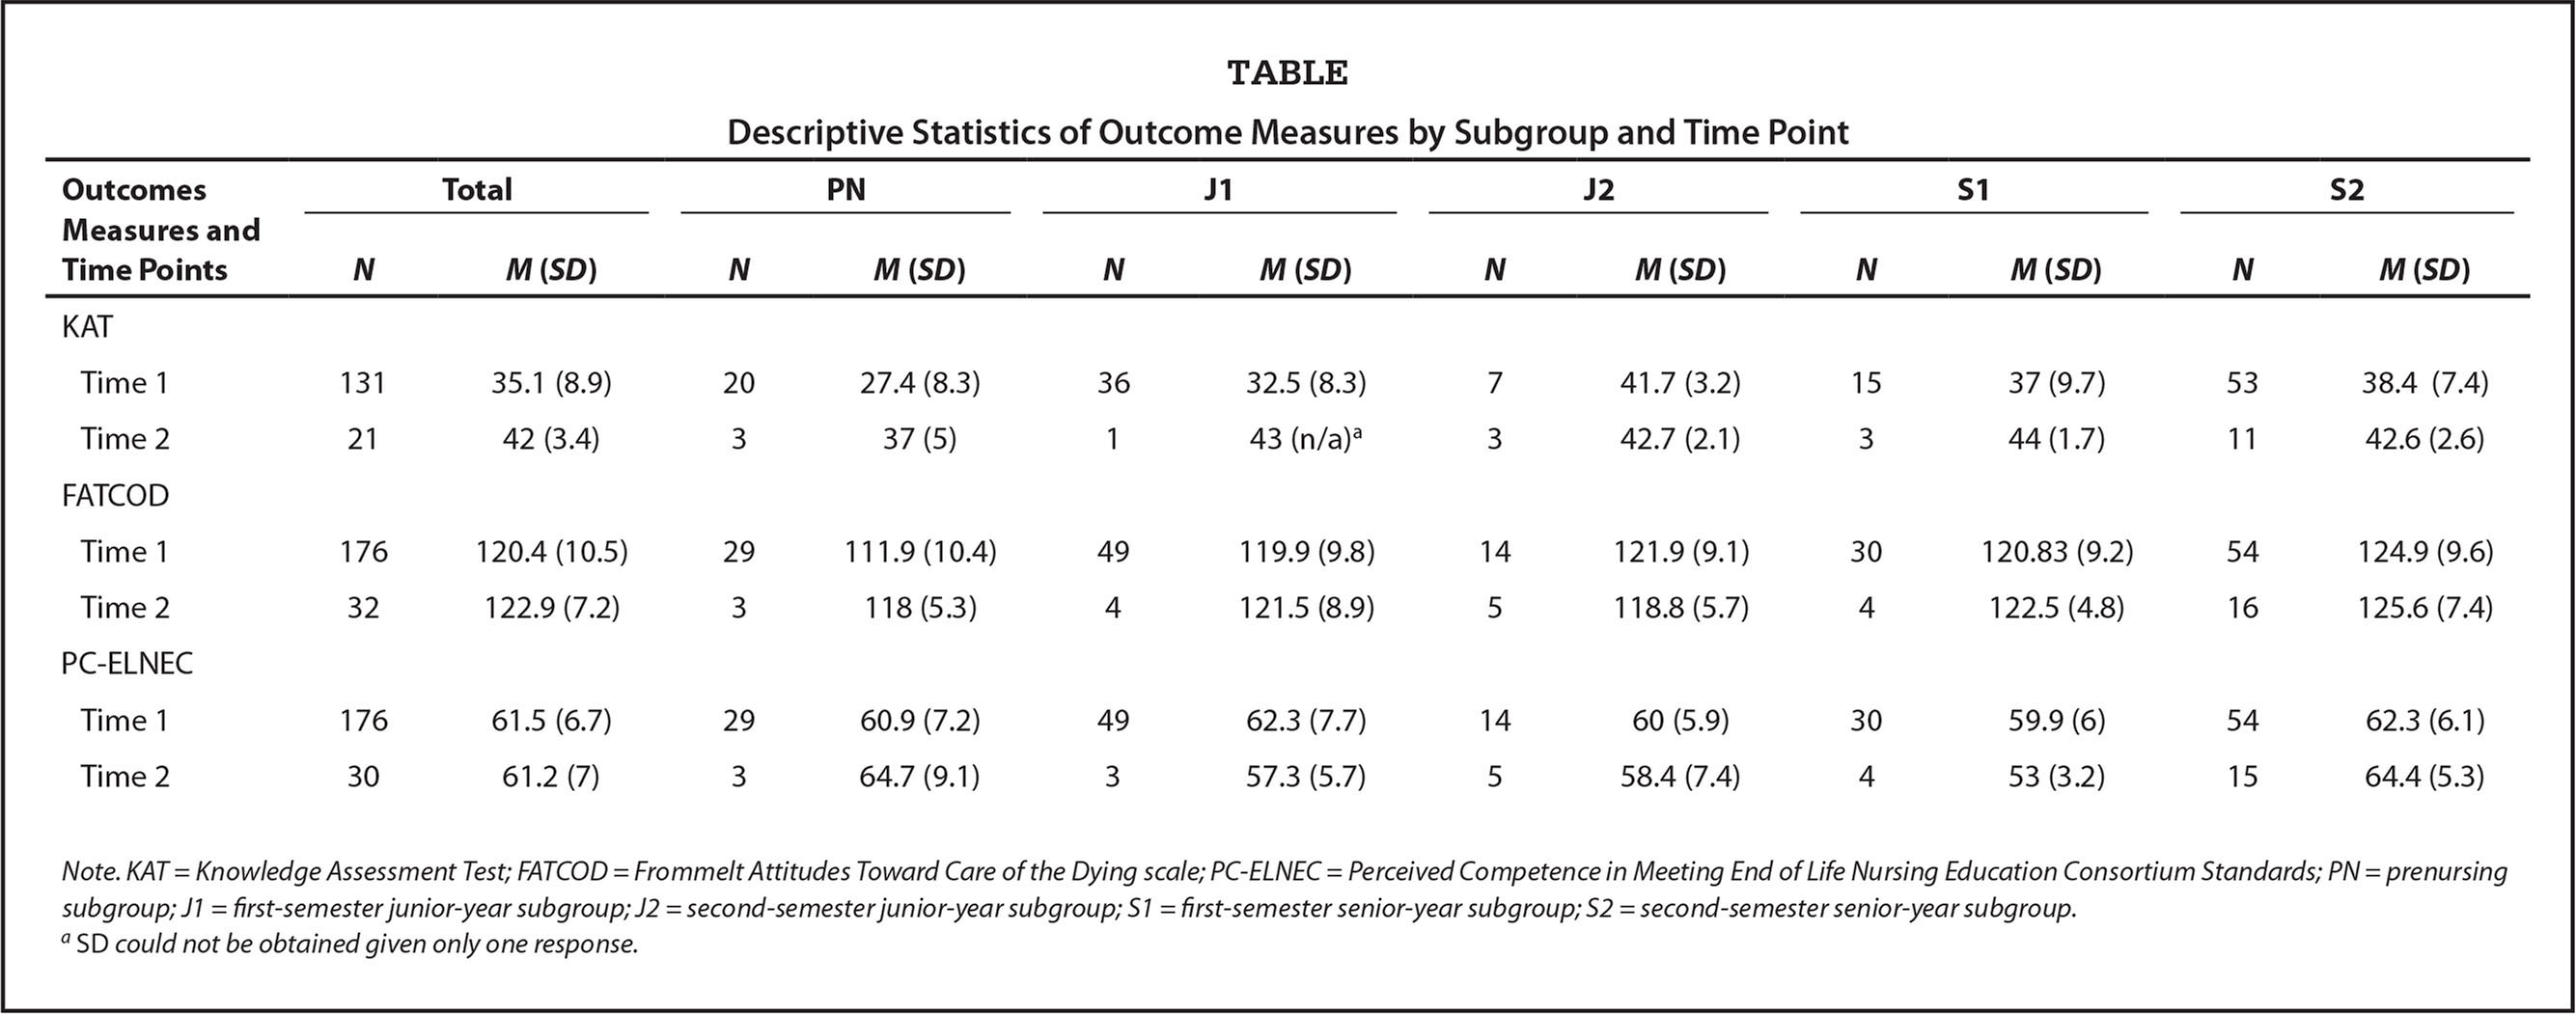 Descriptive Statistics of Outcome Measures by Subgroup and Time Point